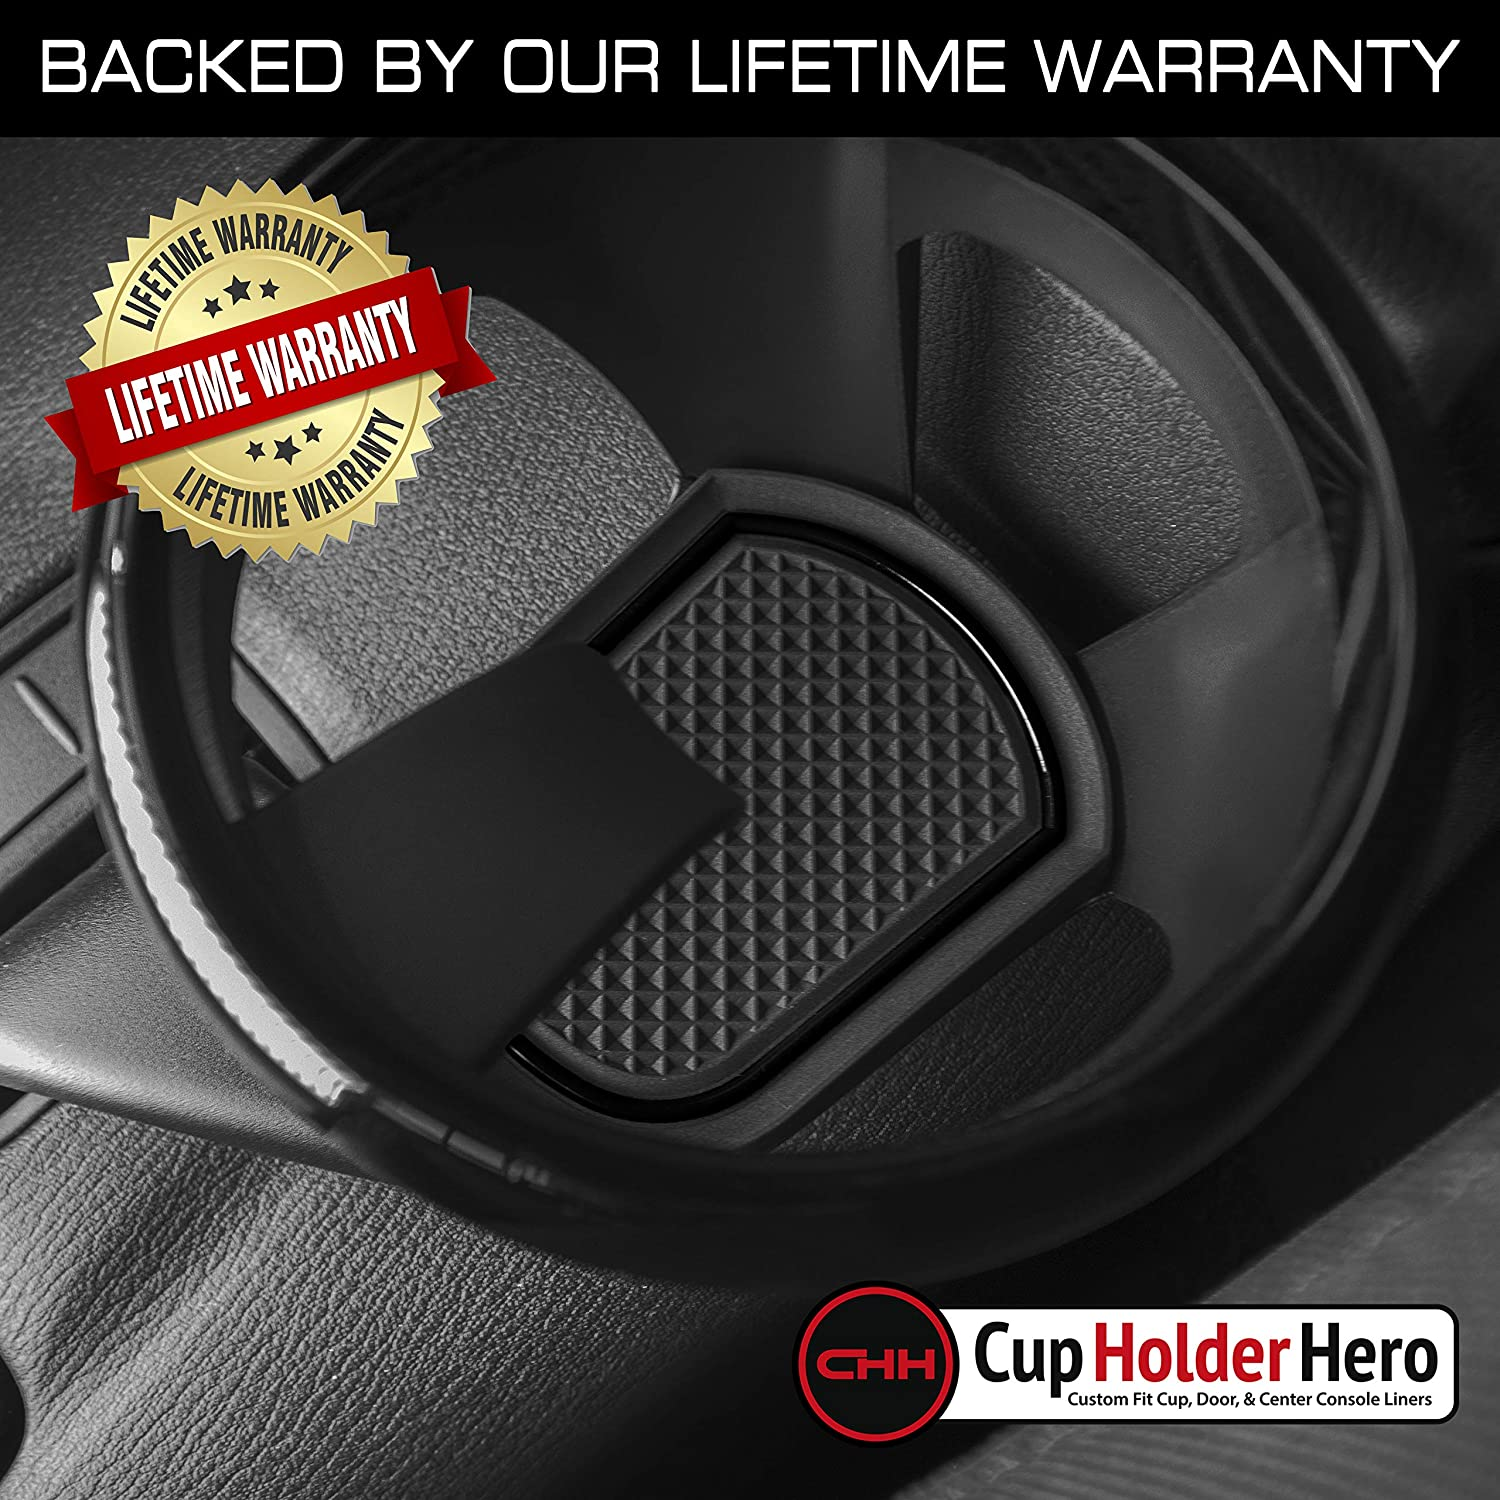 Red Trim CupHolderHero fits Mazda MX-5 Miata and fits Fiat 124 Spider Accessories 2016-2021 Interior Non-Slip Anti Dust Cup Holder Inserts Center Console Liner Mats Door Pocket Liners 7-pc Set